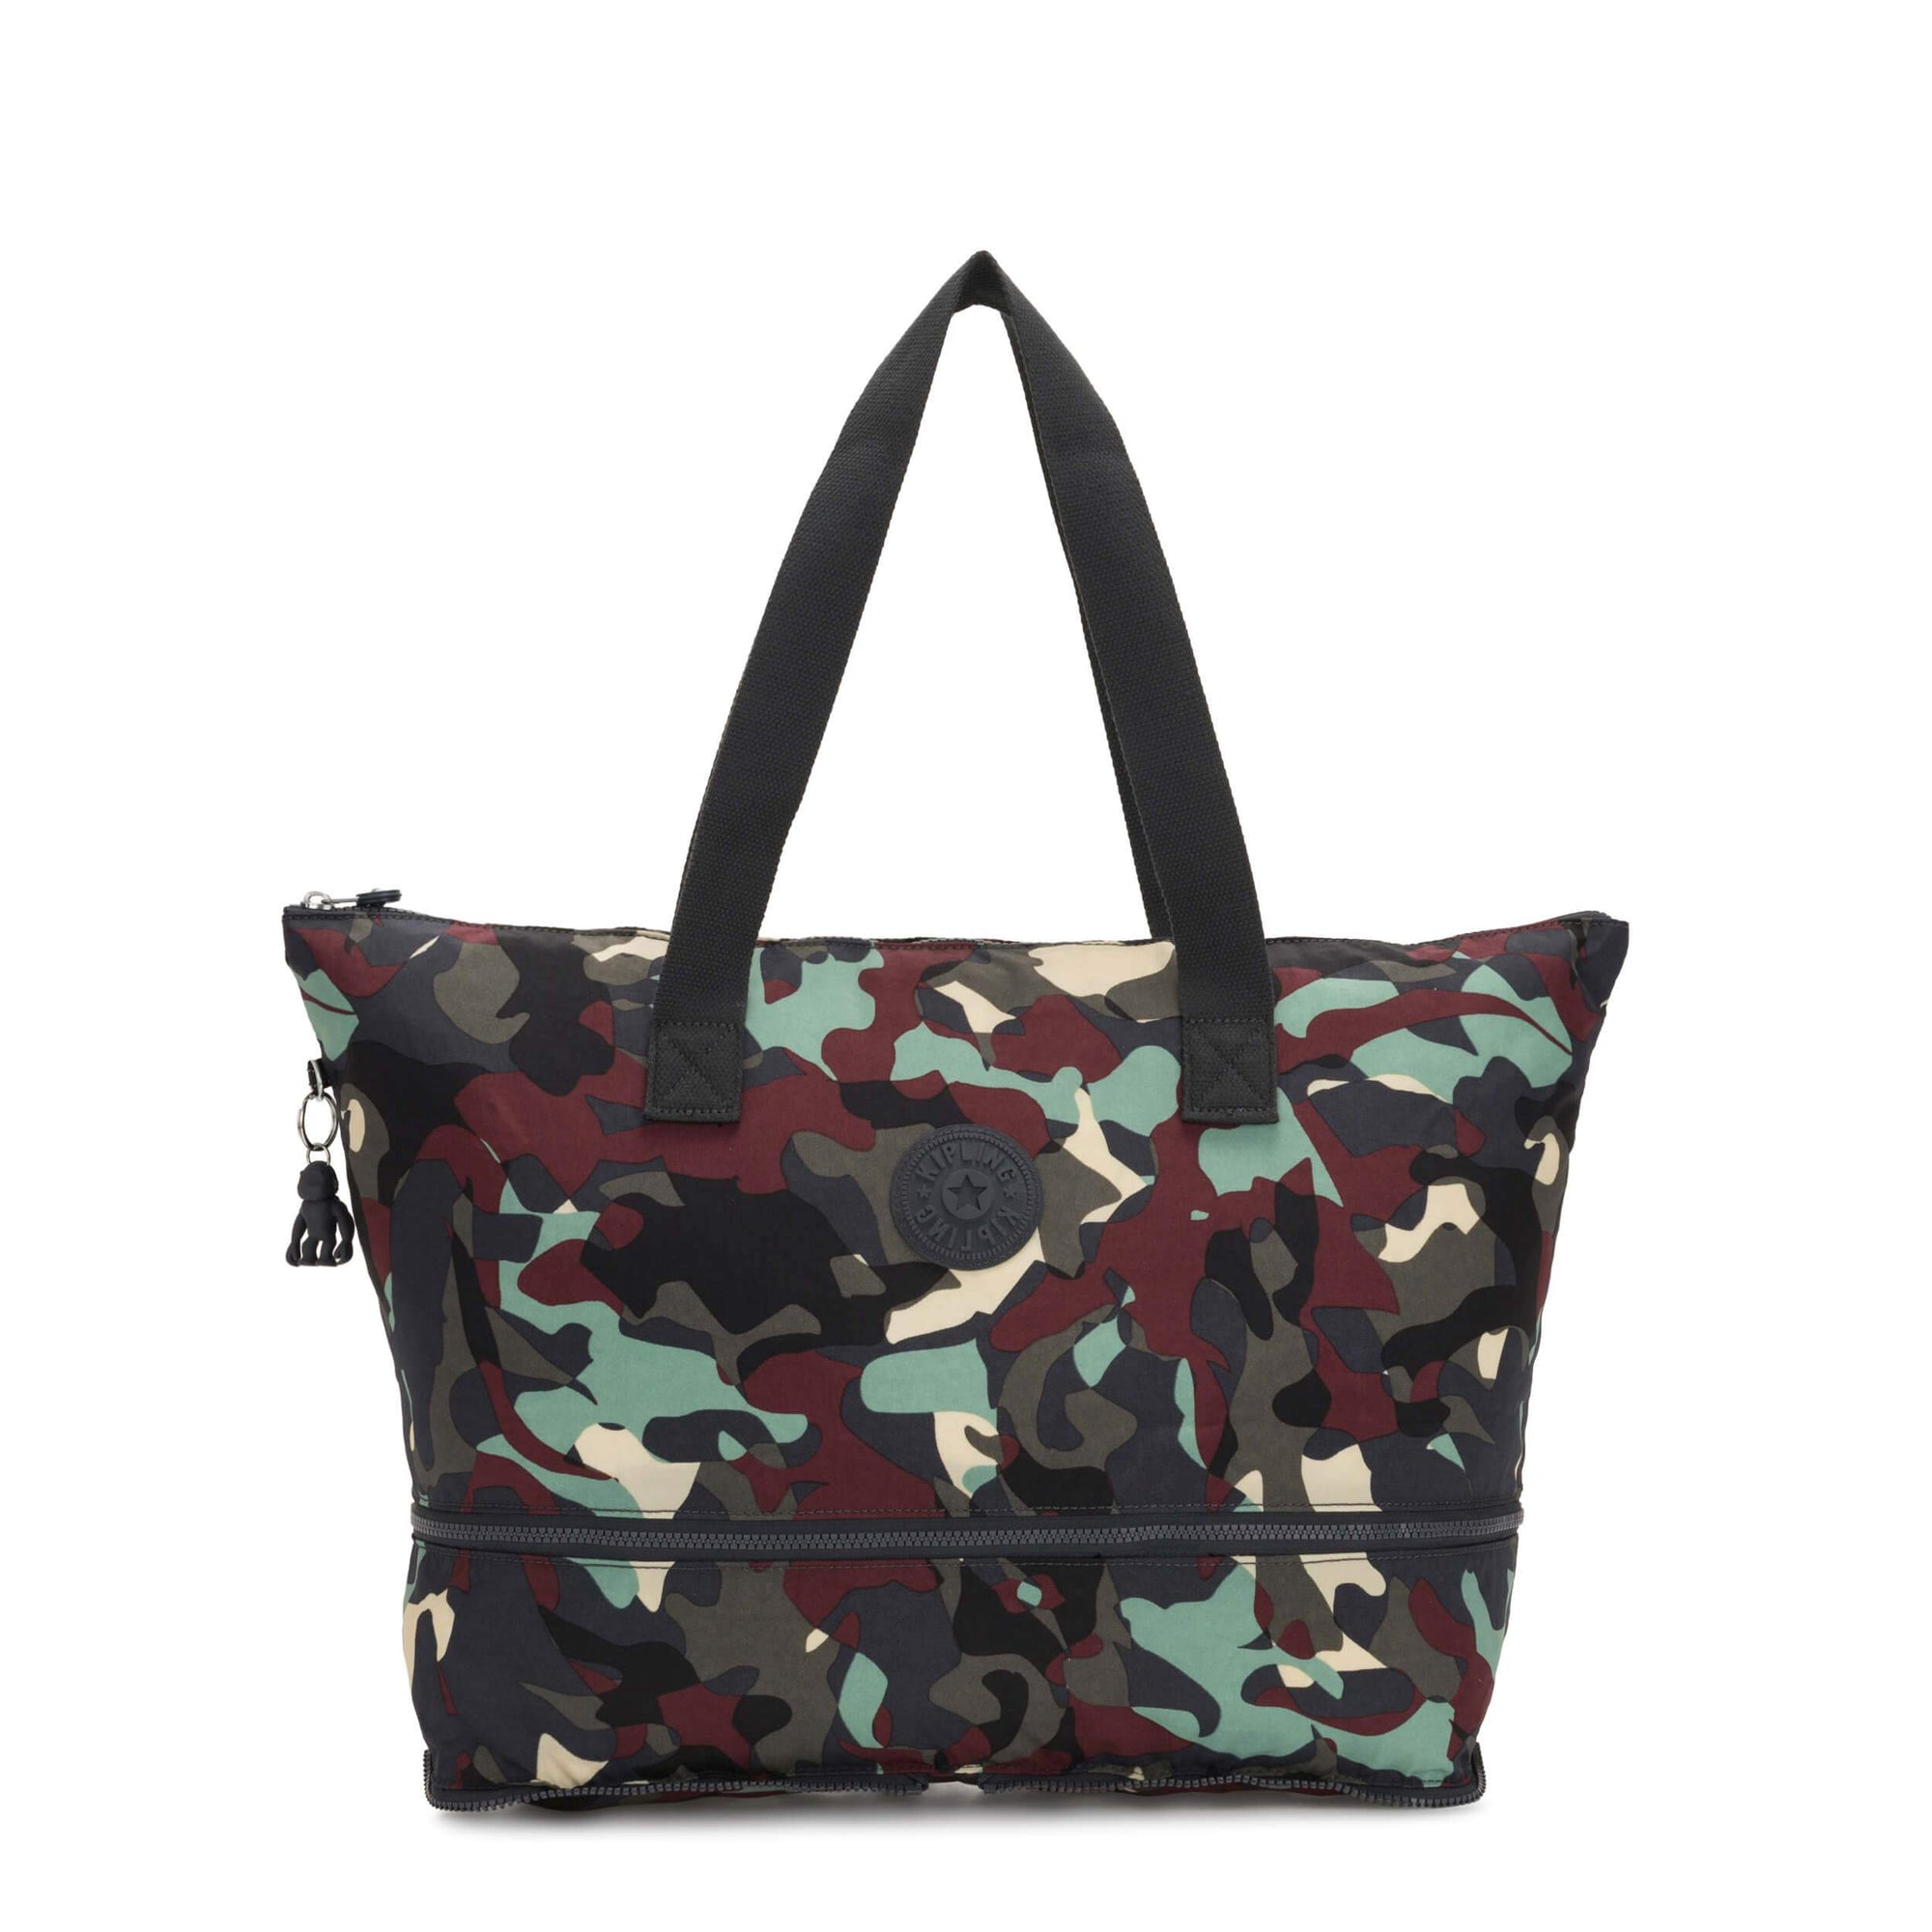 Bolsa Kipling Imagine Pack - Plegable Camo L